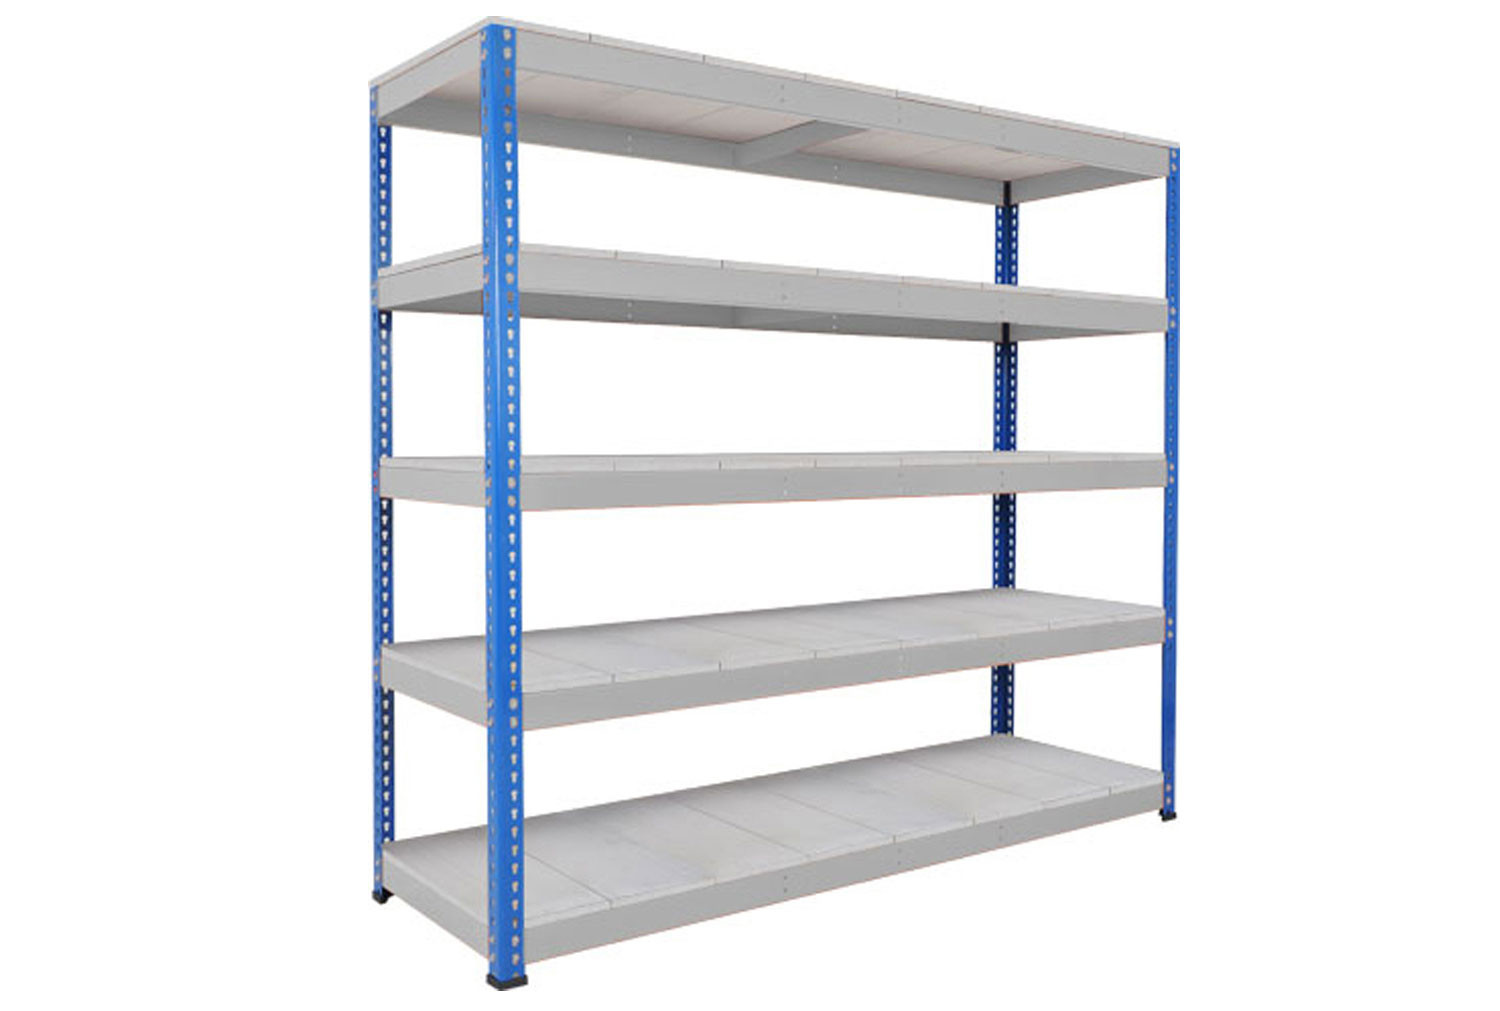 Rapid 1 Heavy Duty Shelving With 5 Galvanized Shelves 2440wx1980h (Blue/Grey)